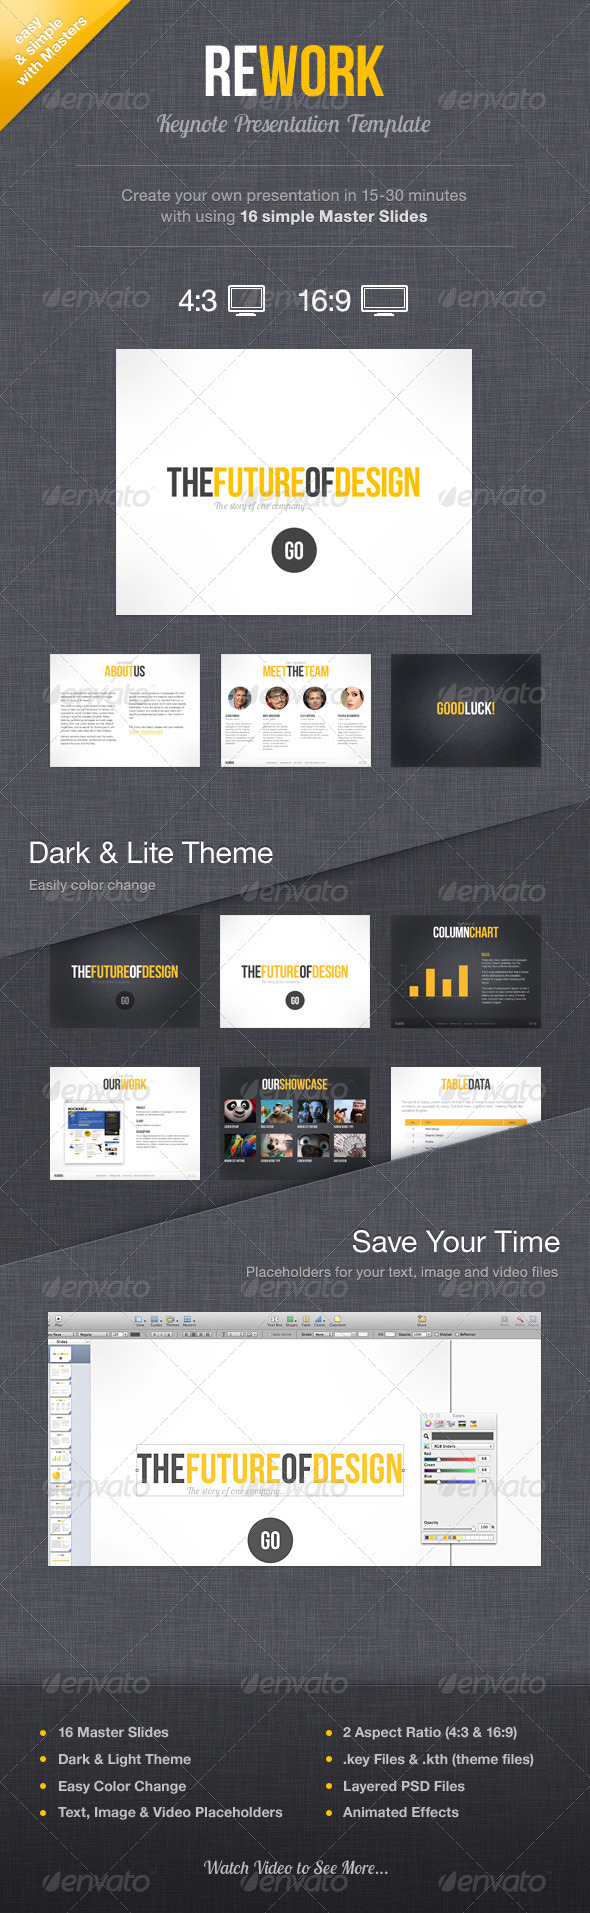 Rework Keynote Presentation Template - Keynote Templates Presentation Templates